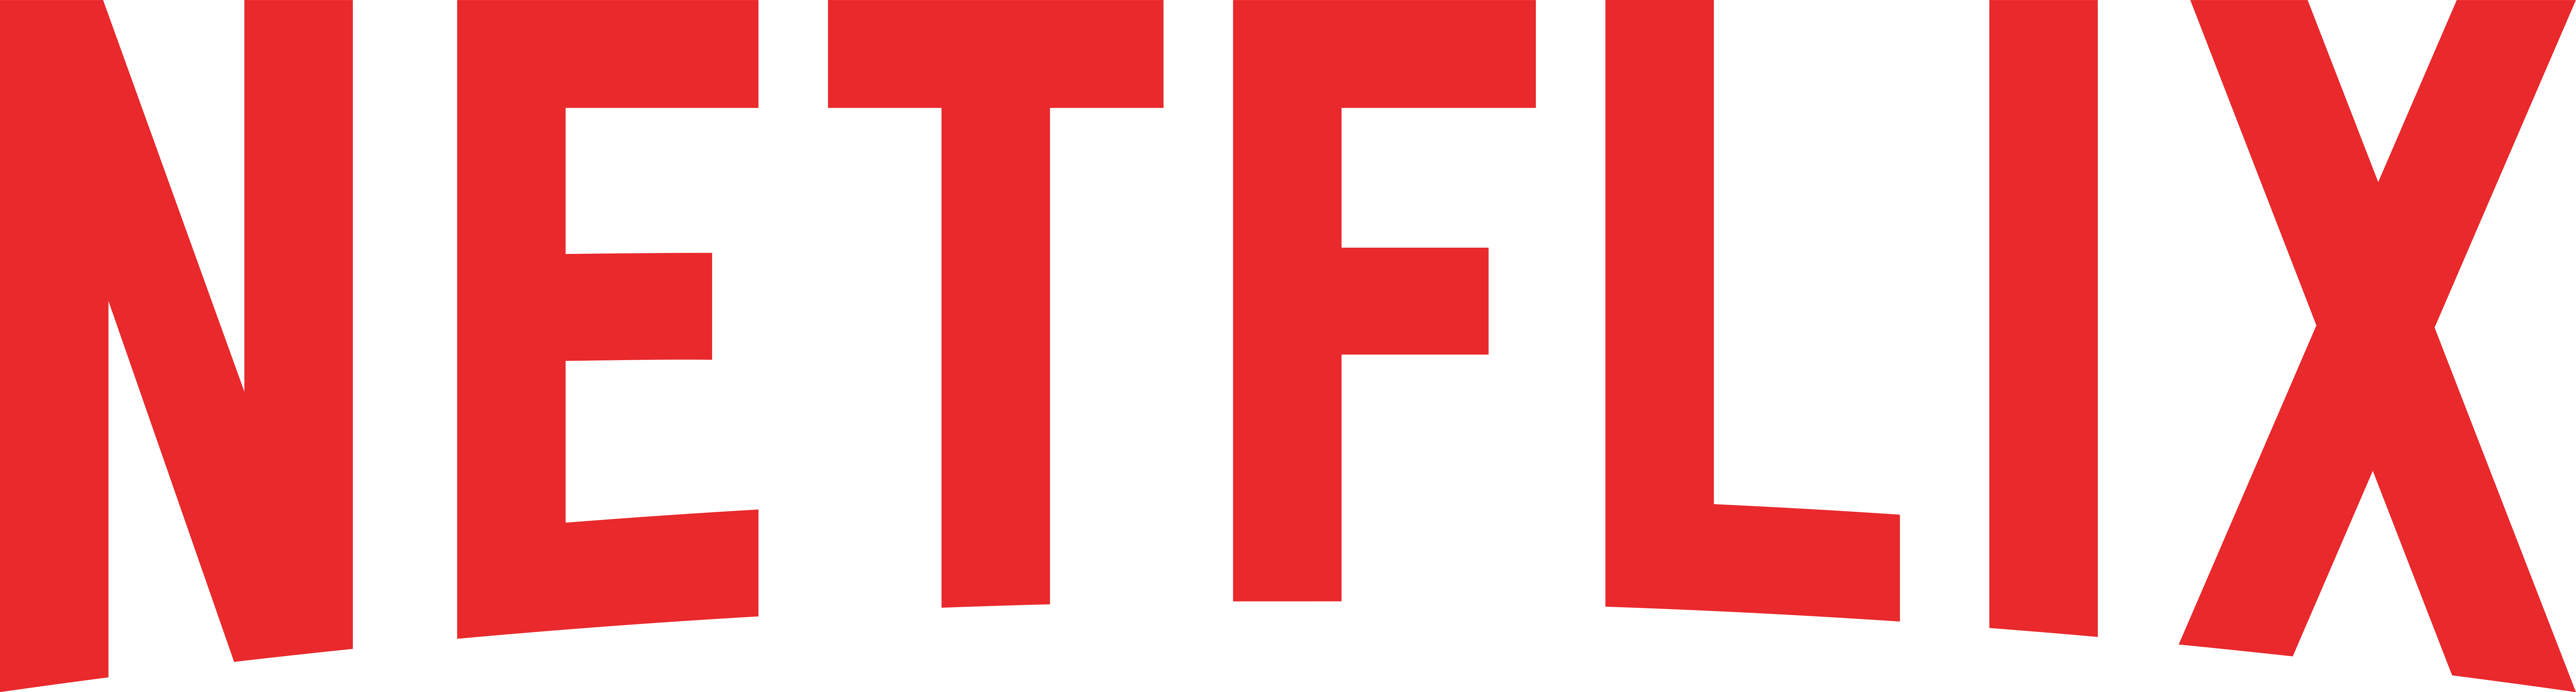 Netflix logo png transparent background. Free logos drawing